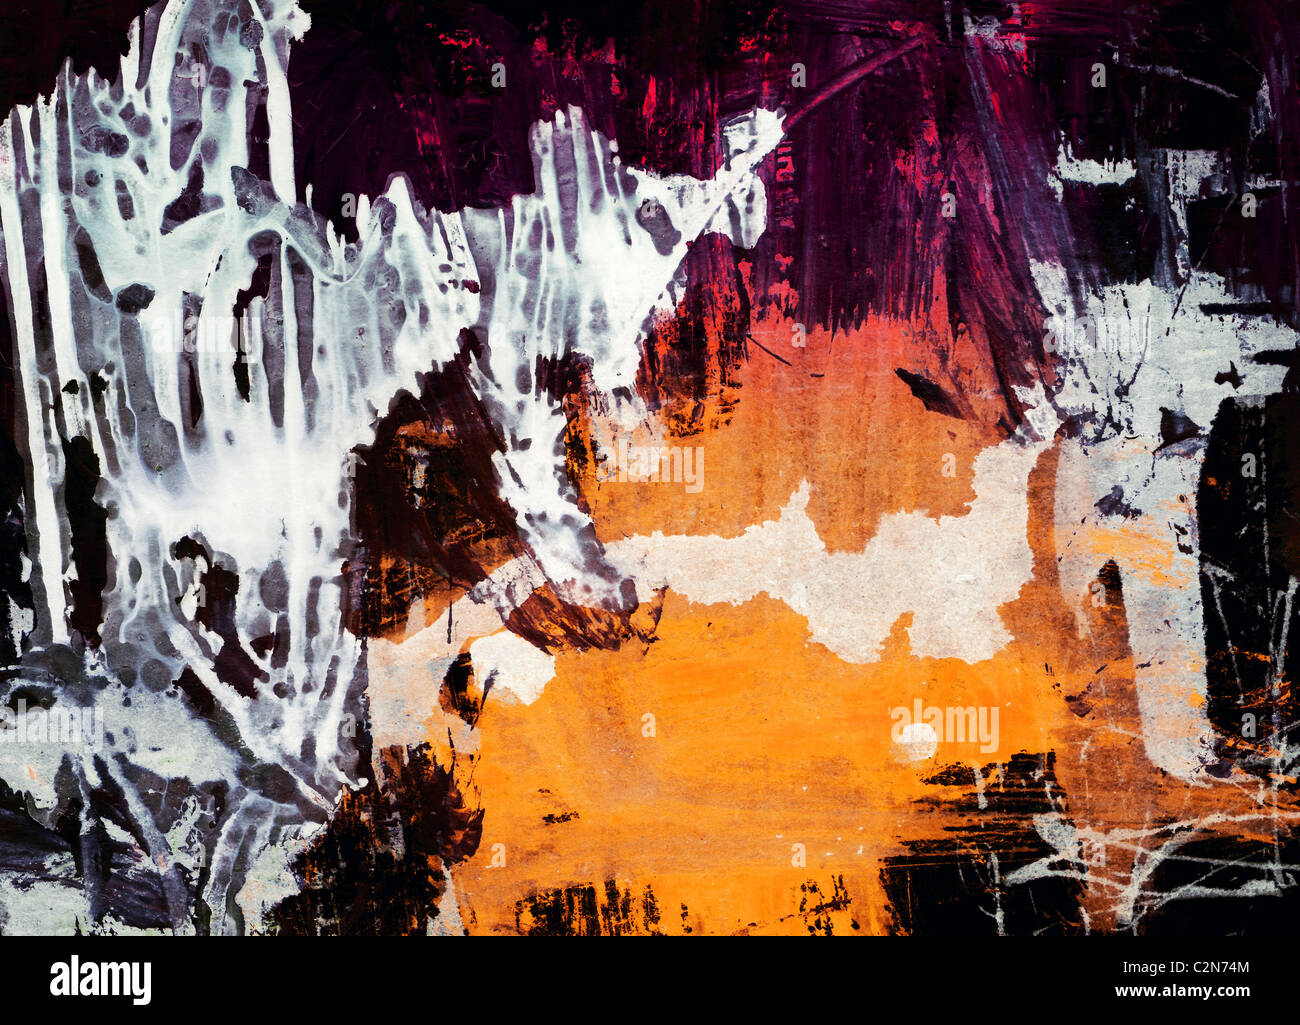 Grunge  textured  abstract  graphic  background - collage - Stock Image